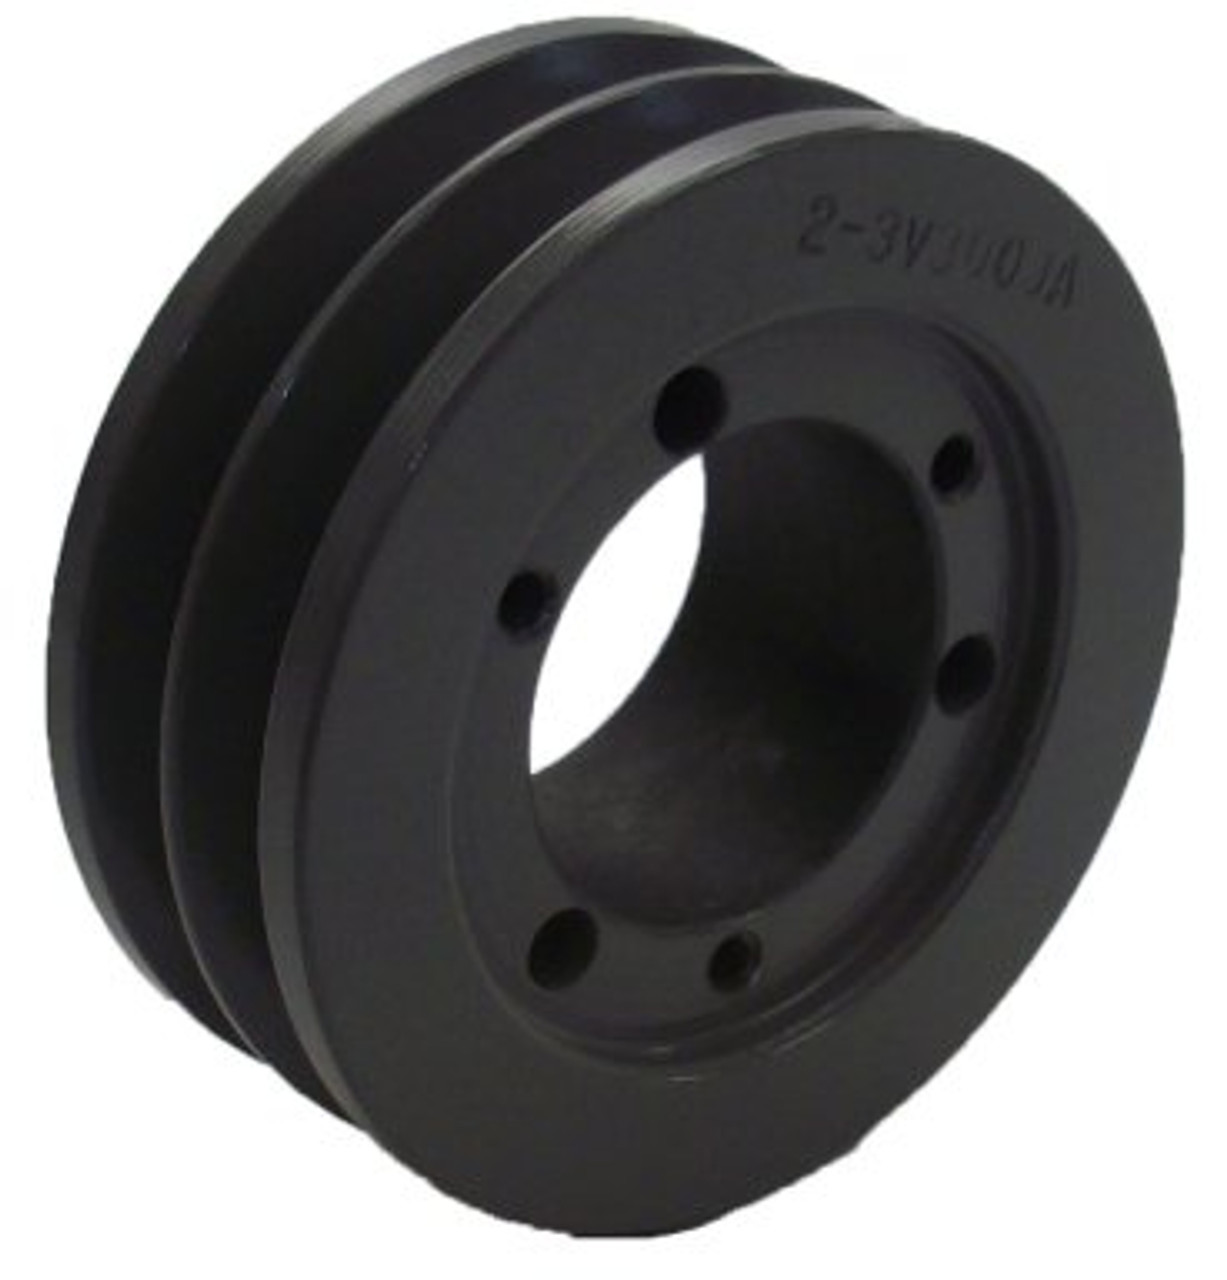 4-3V315-SH Pulley bushing not included 3.15 OD Four Groove Pulley ...